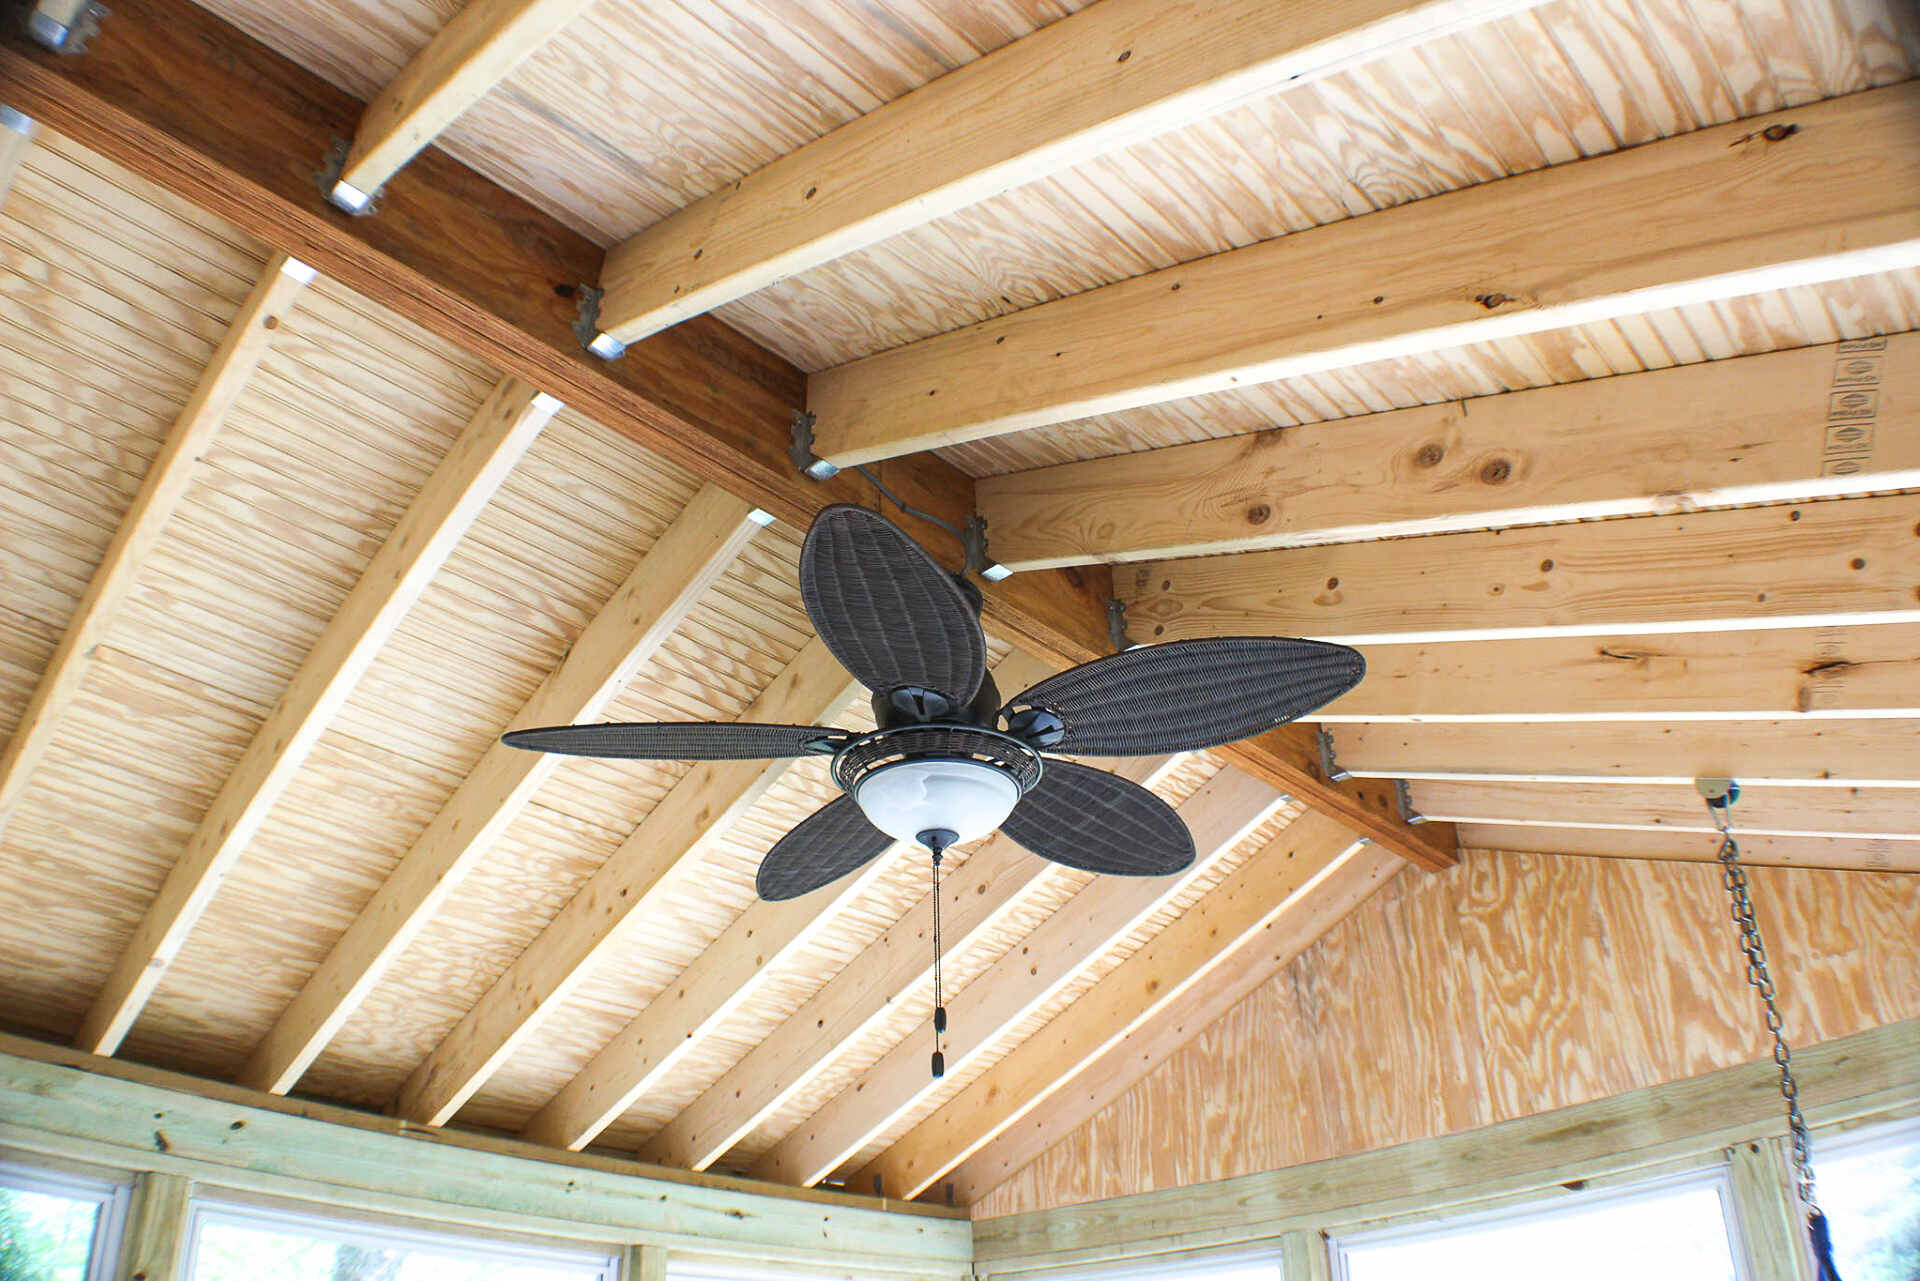 Ceiling Fan with Light and Switch for the Deck